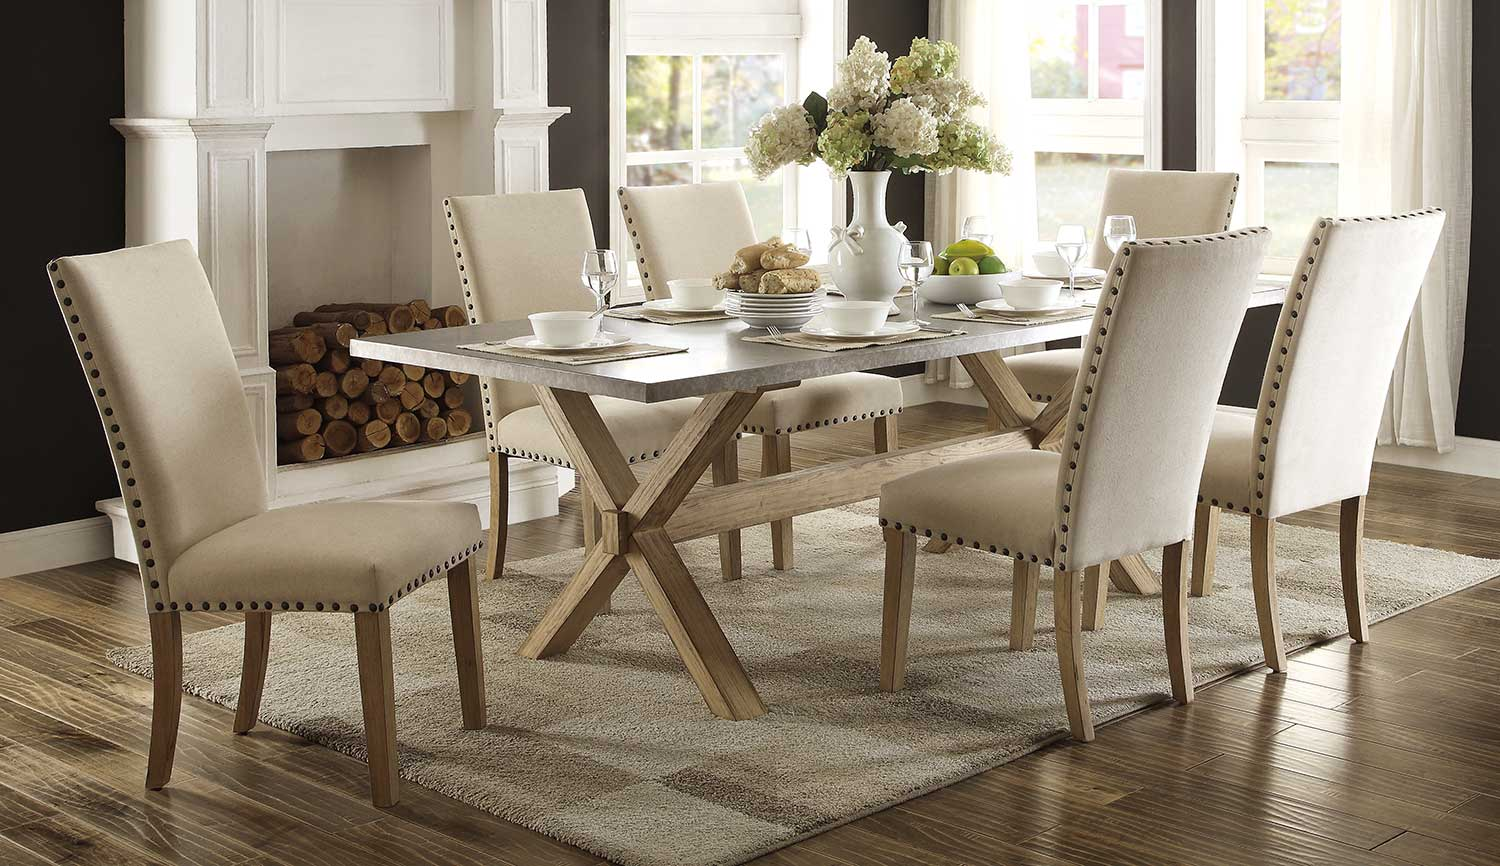 Homelegance Luella Trestle Dining Set - Weathered Oak